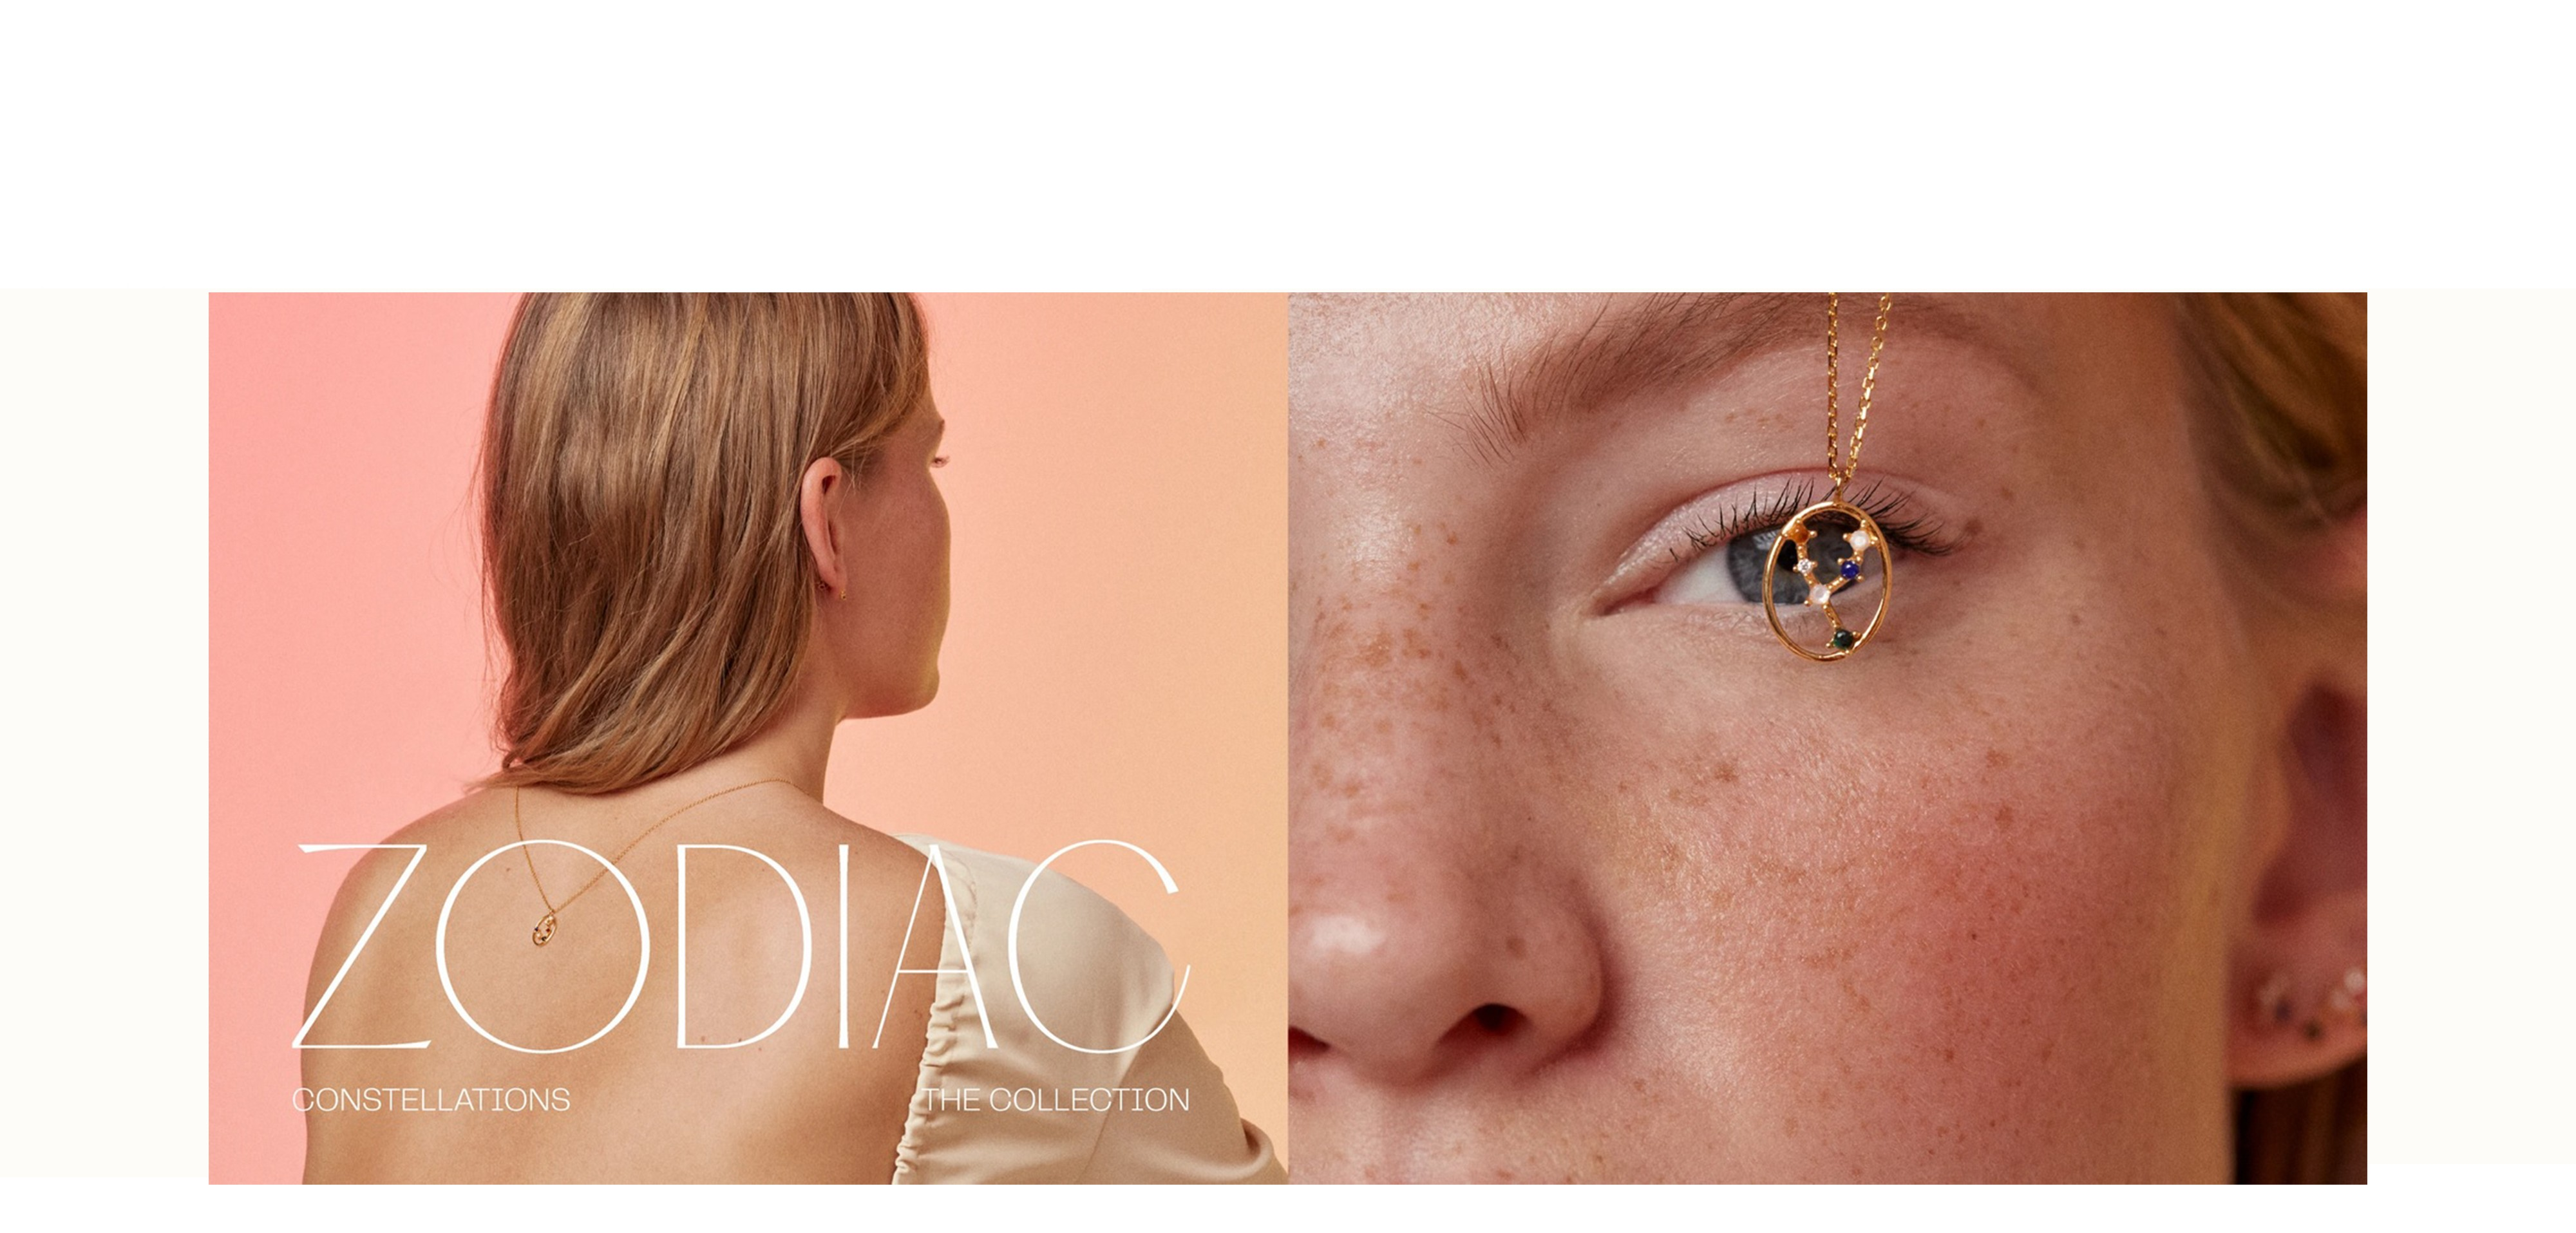 Pdpaola Zodiac Costellations the collections